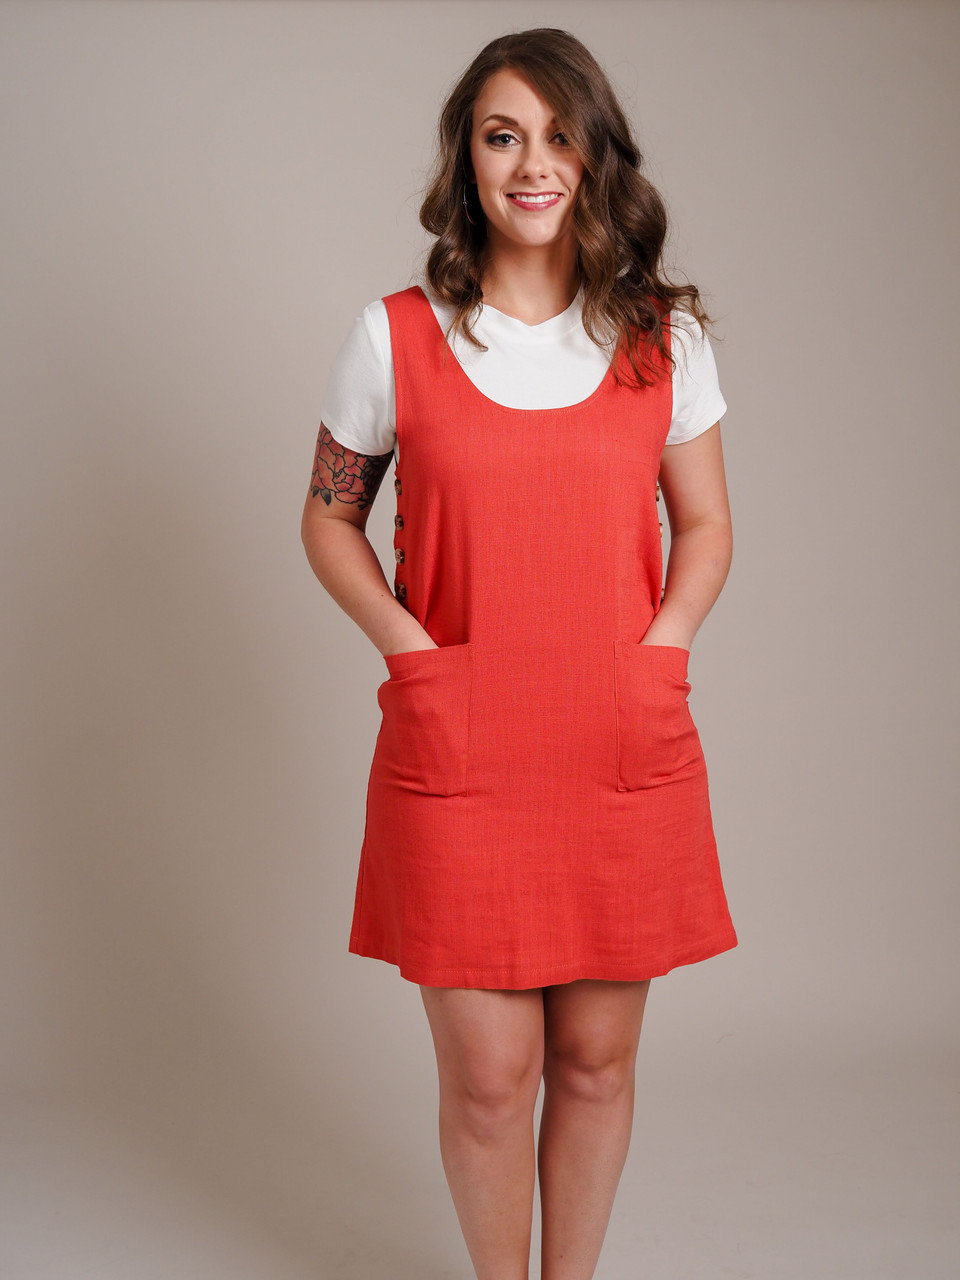 rust colored jumper with pockets